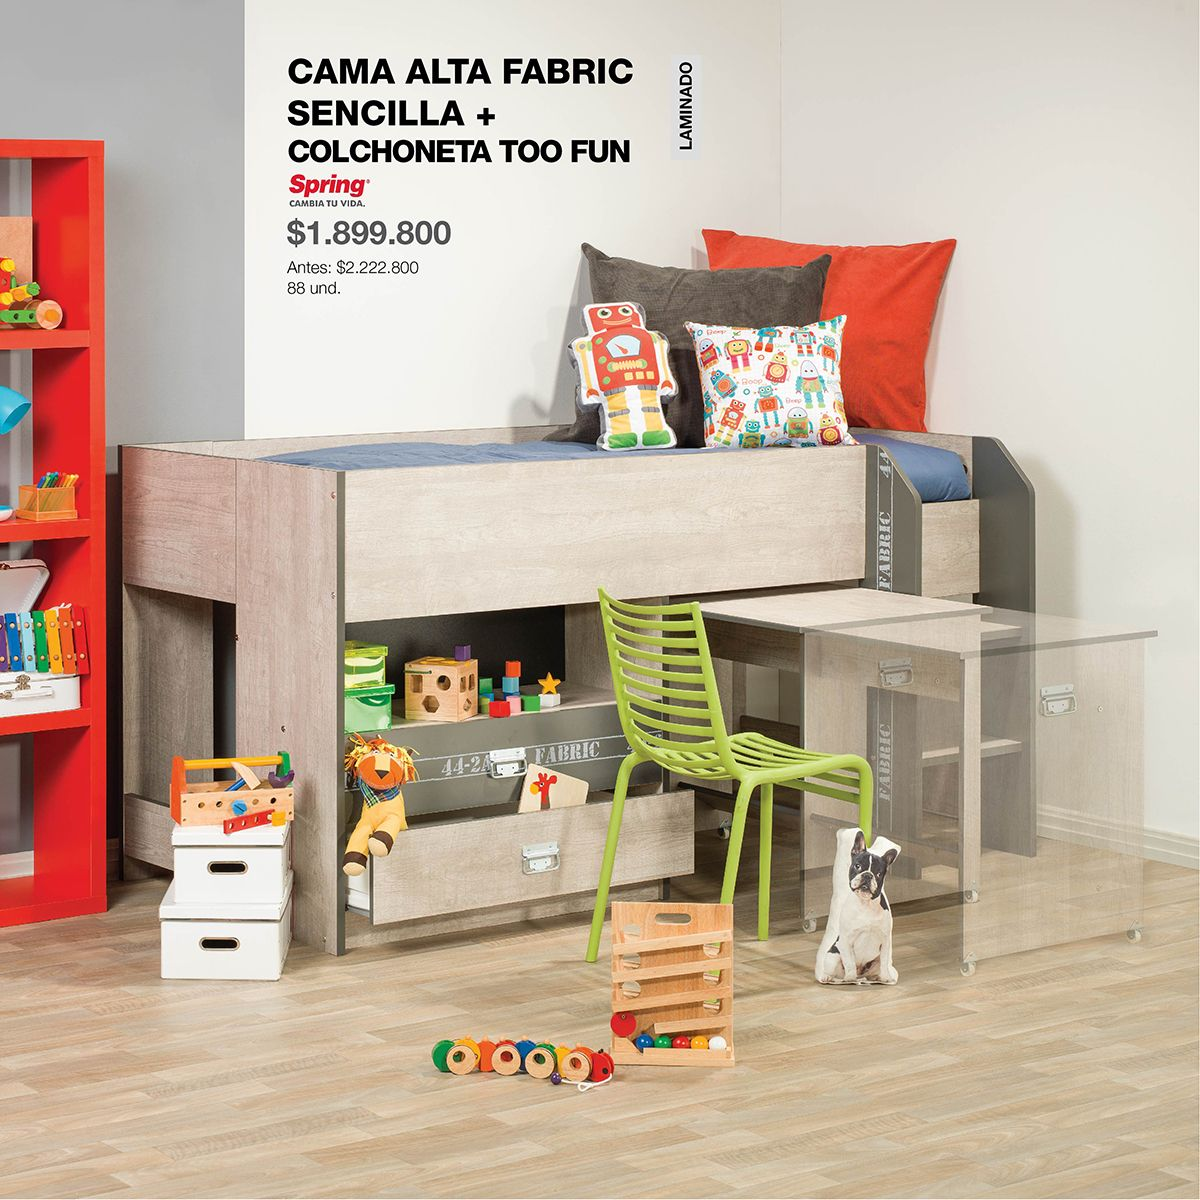 Cama Alta #Fabric: #Kids #ChildBed #Break #HomeArticles #Home #Bed ...